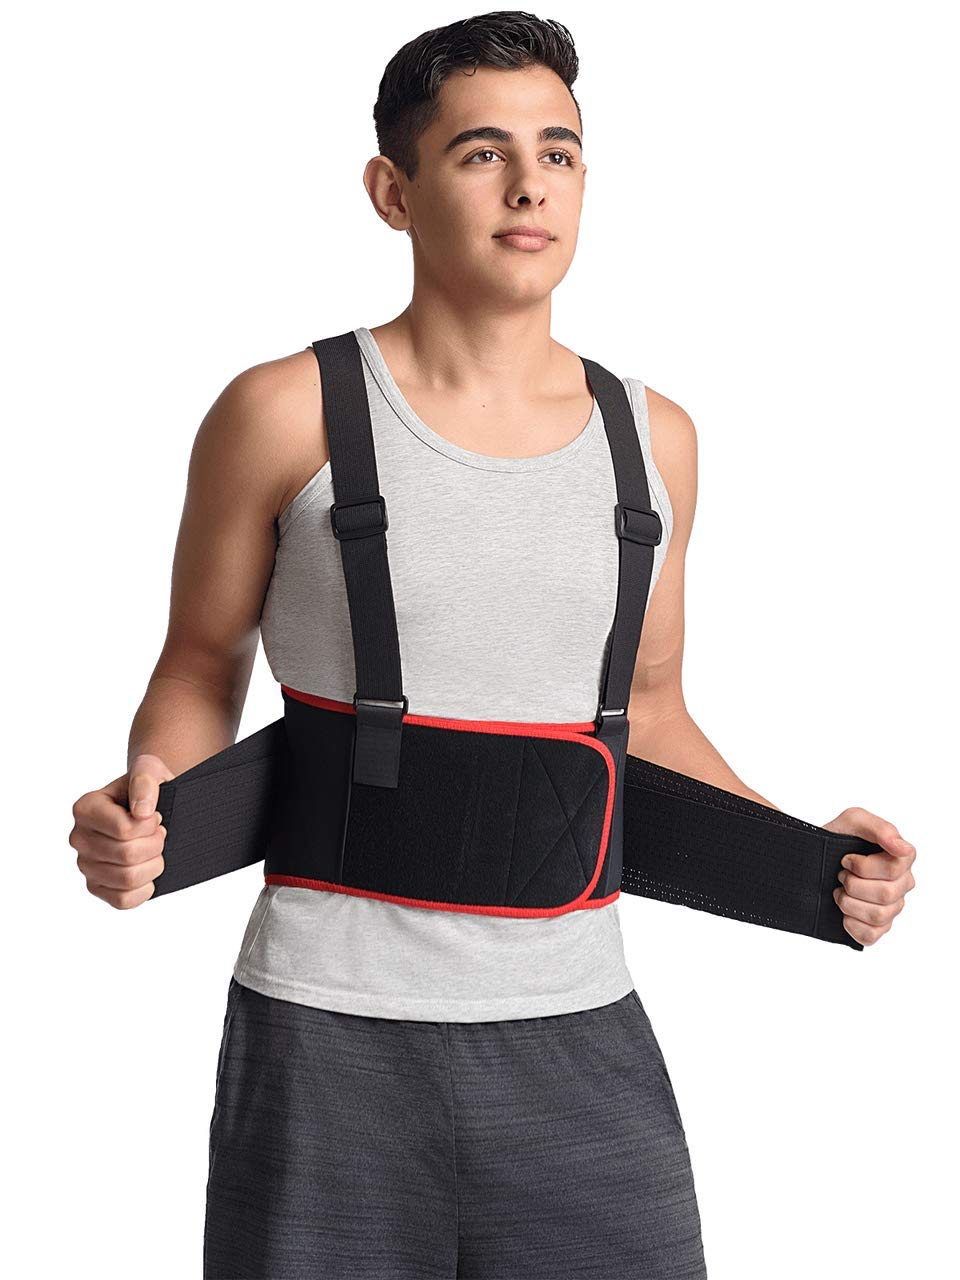 MAXAR Breathable Lower Back Support with Detachable Suspenders IBS-3000: Black XX-Large by Maxar